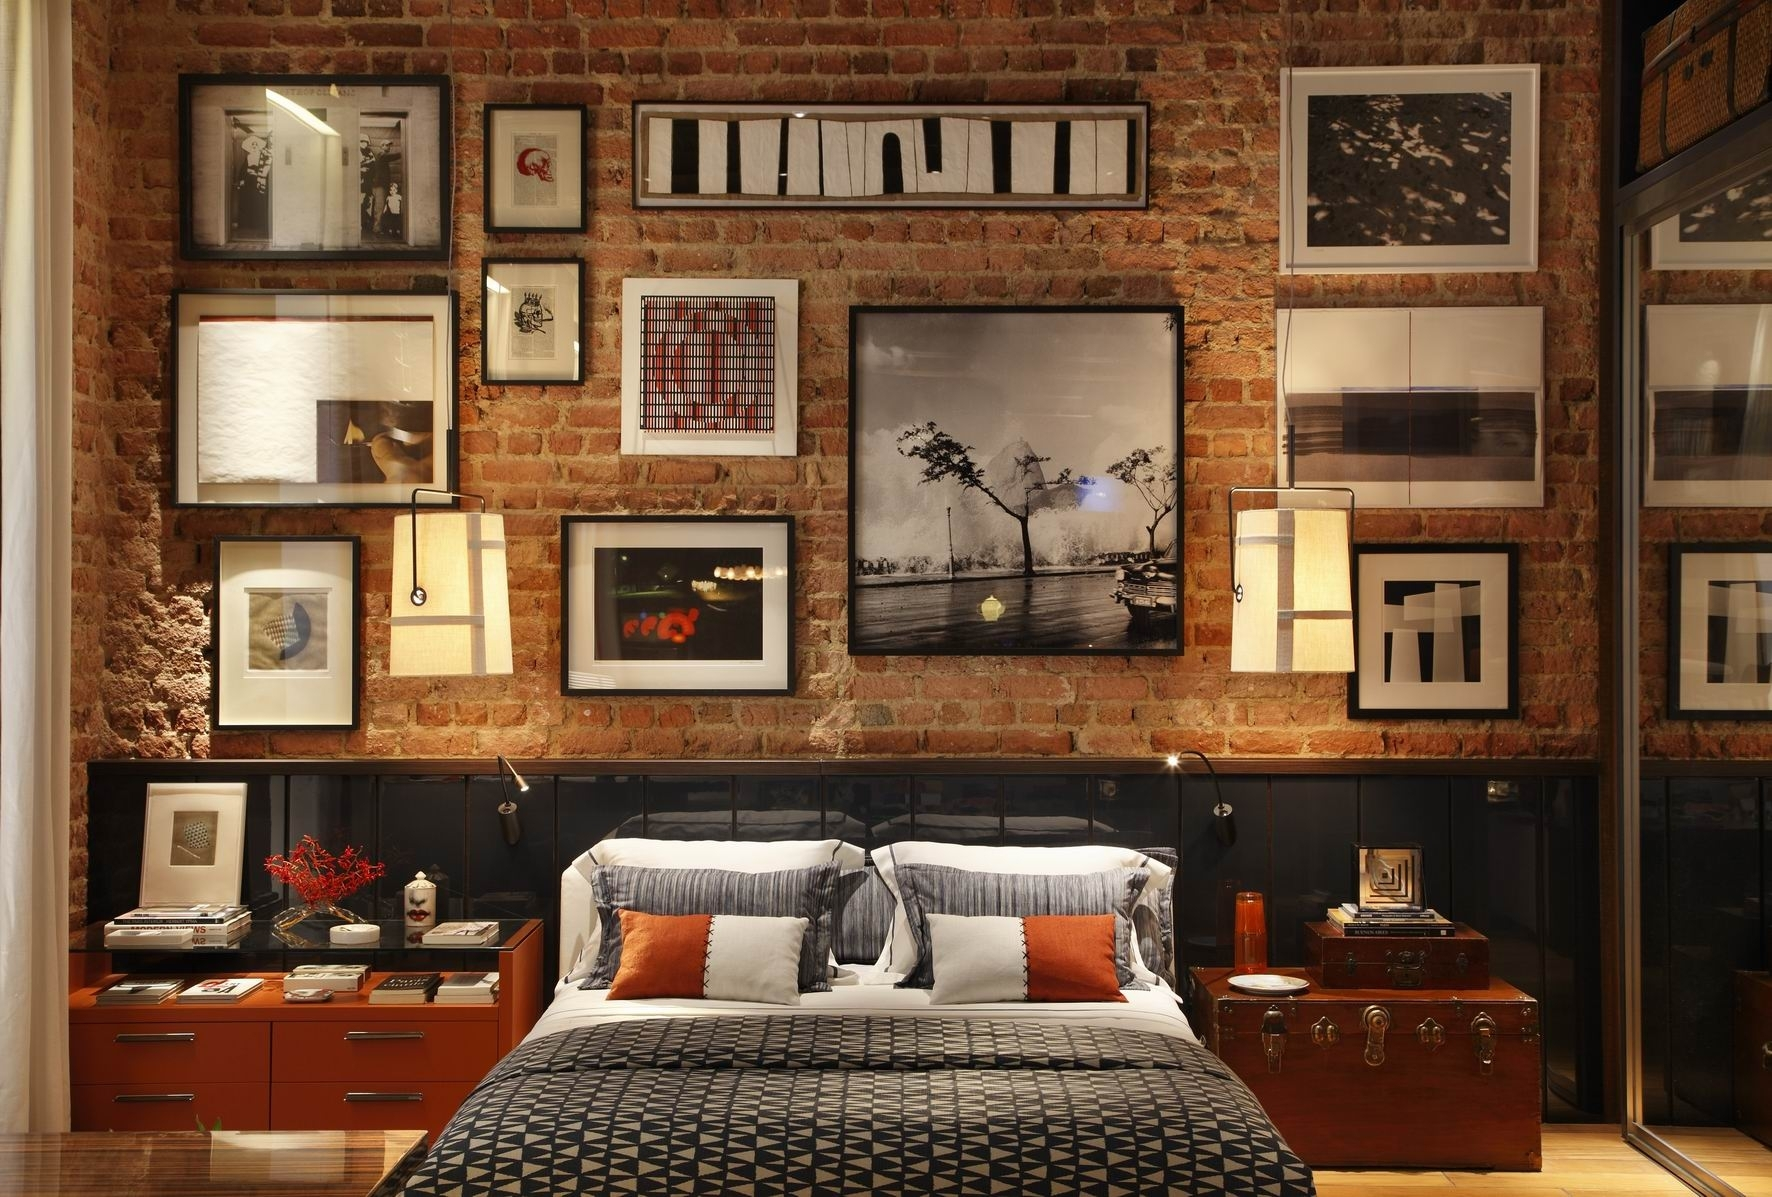 Inspirational Natural Master Bedroom Design Interior With Grand With Regard To 2018 Exposed Brick Wall Accents (View 10 of 15)